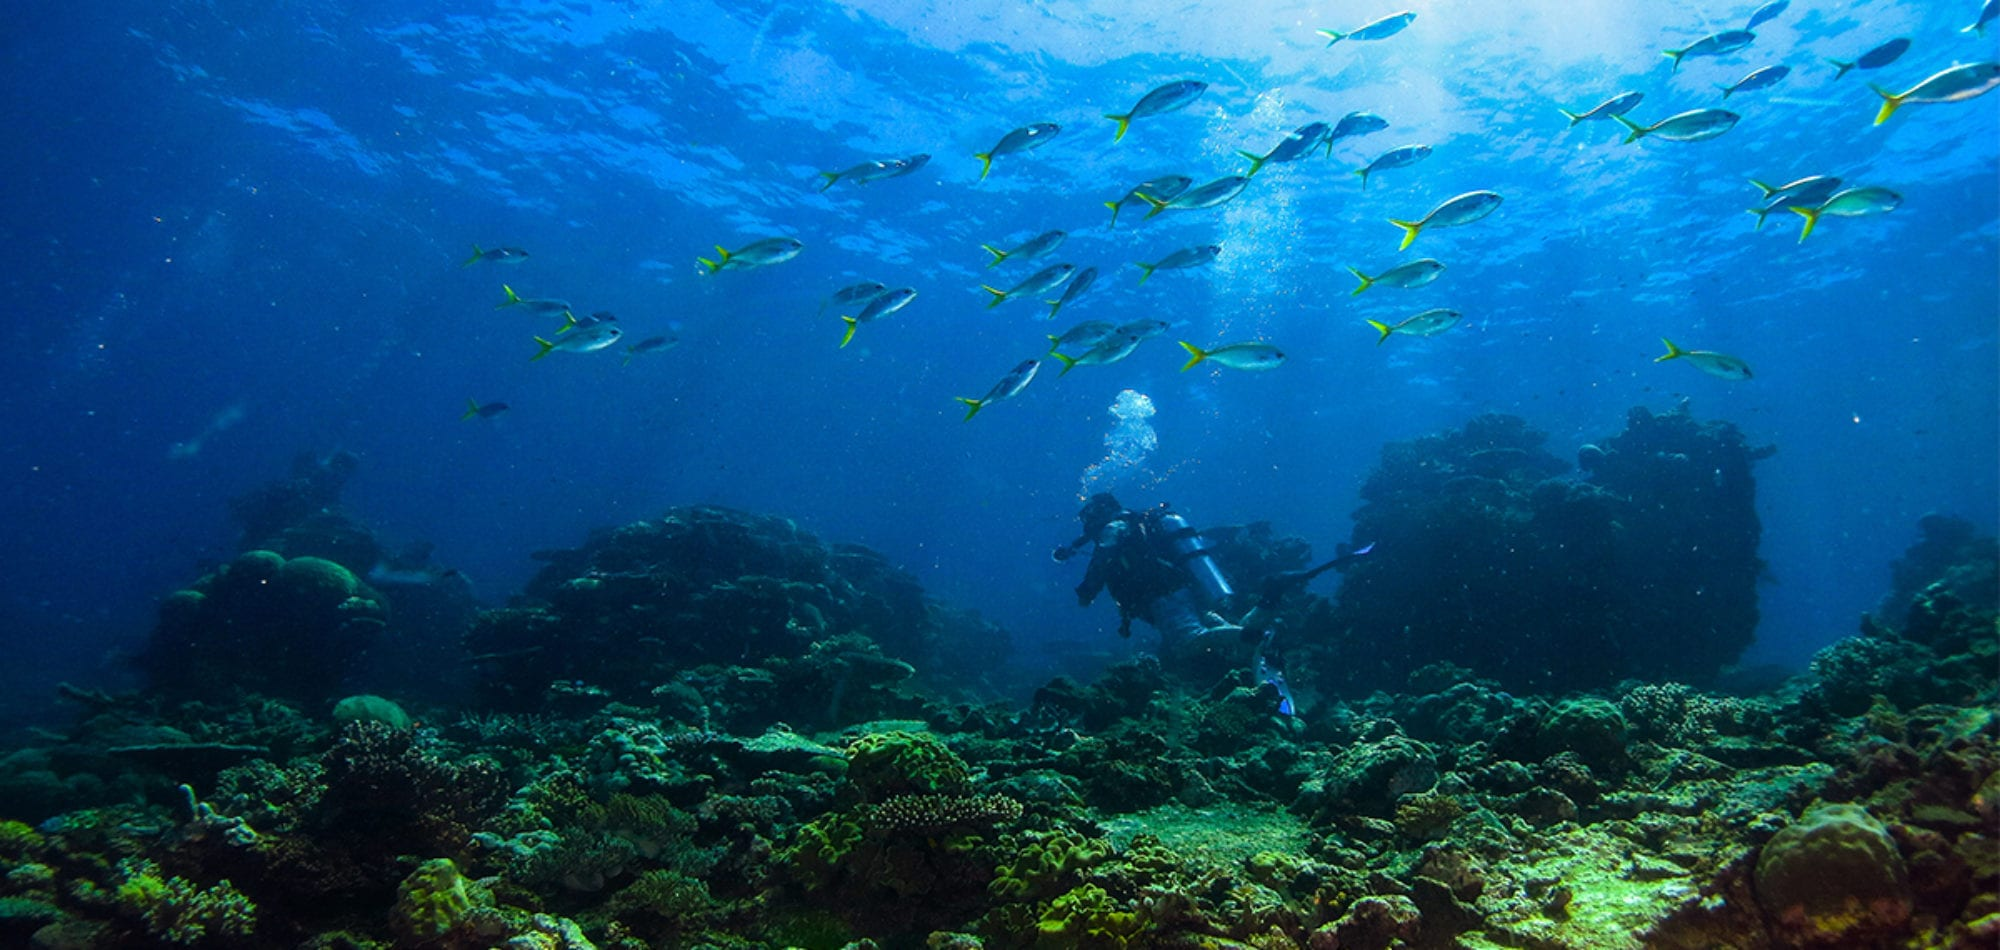 Cairns learn to scuba dive - diver amidst a school of fish